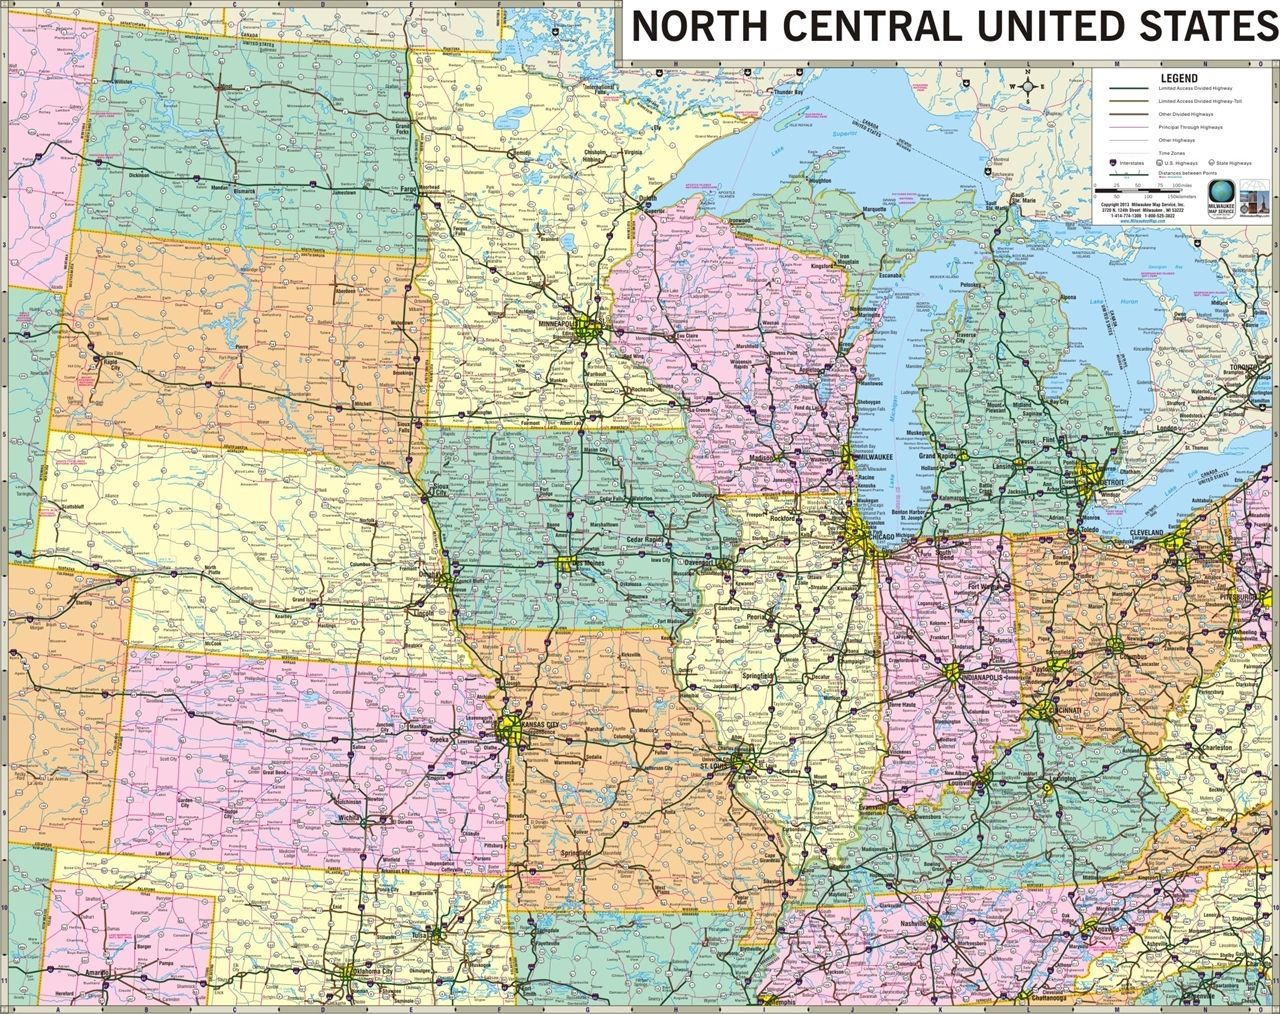 USA Road Map Thempfaorgwpcontentuploadsusmaphigh Best - Map of south central us